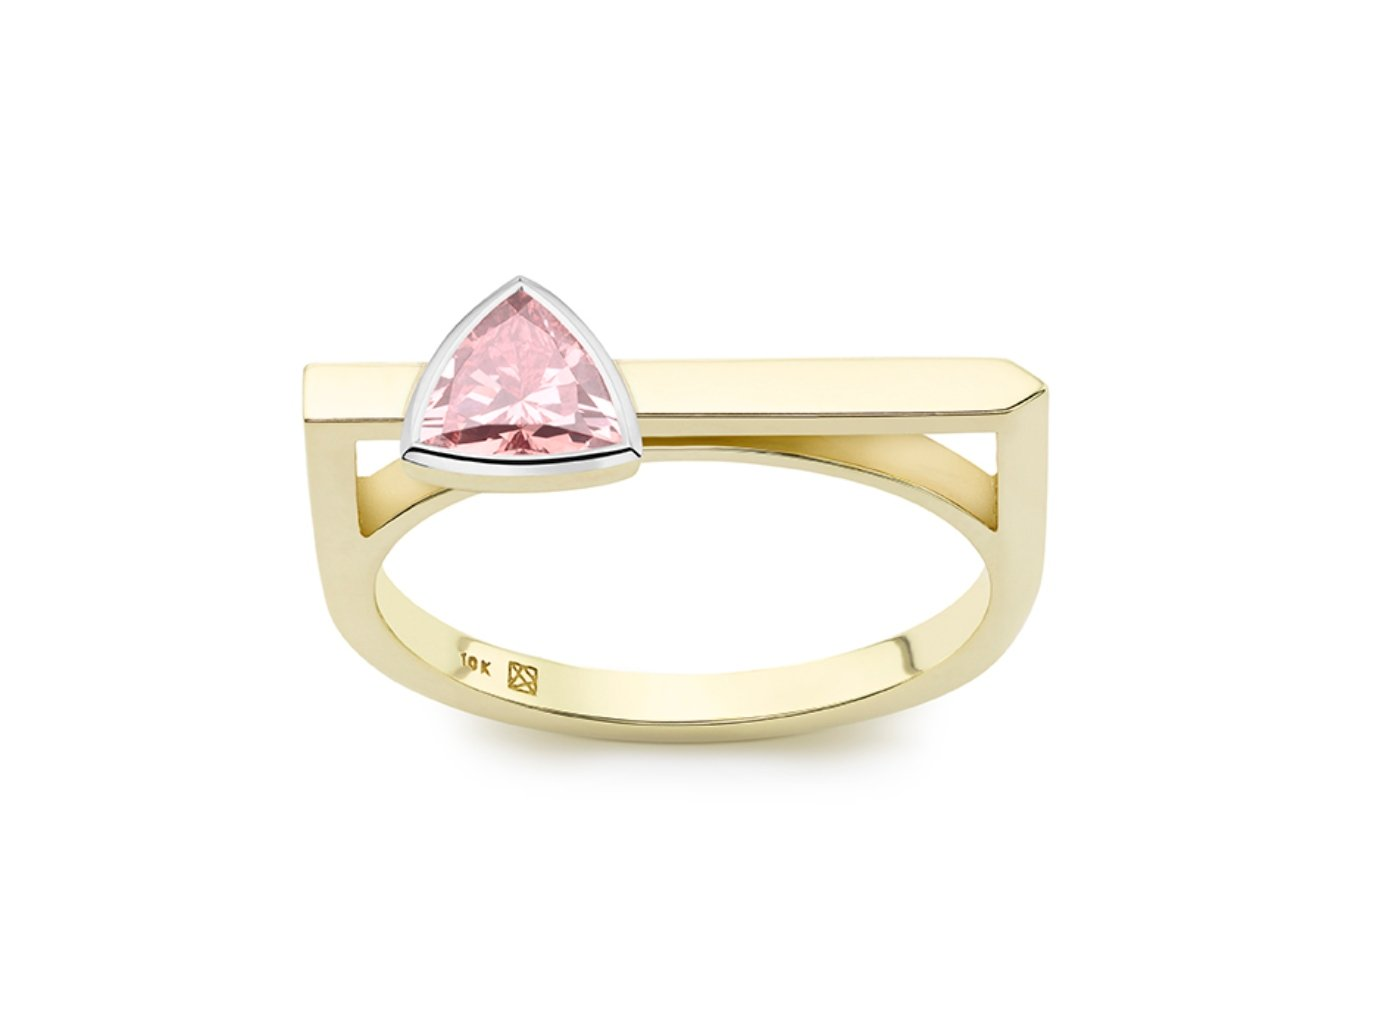 Front view of Trillion linear 3/8 carat ring with pink diamond